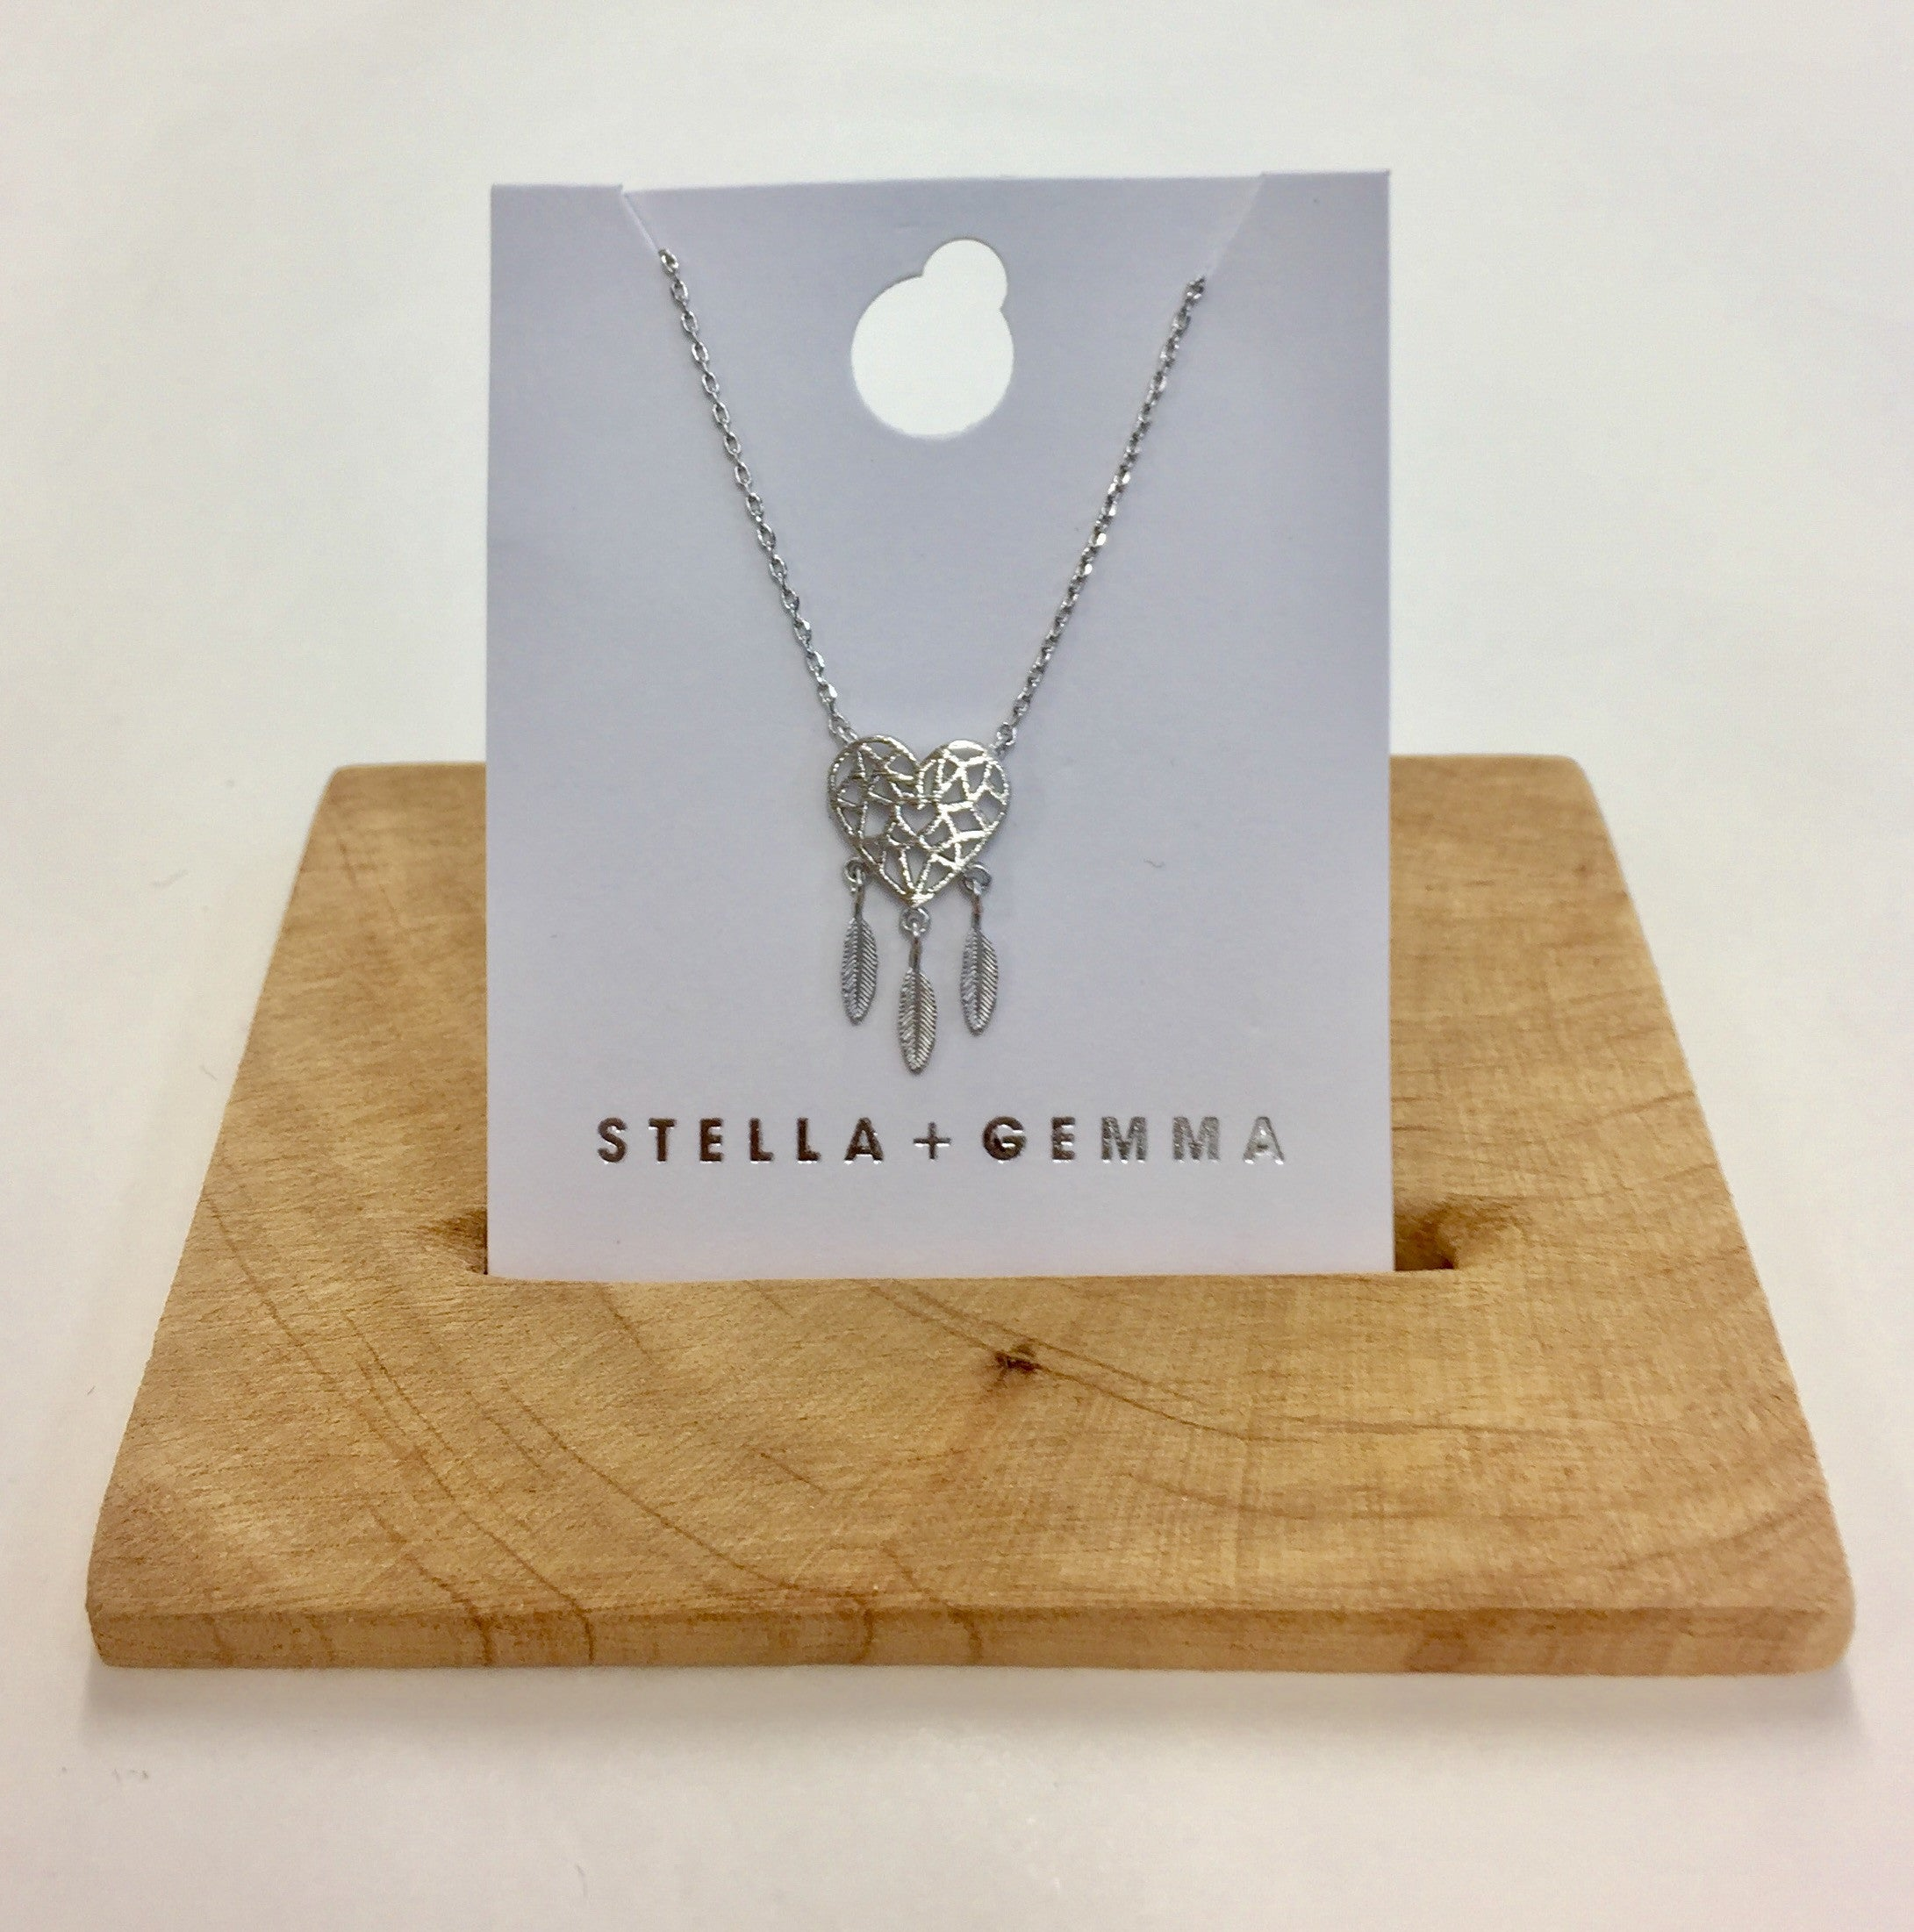 Stella + Gemma - Silver Heart Dreamcatcher Necklace